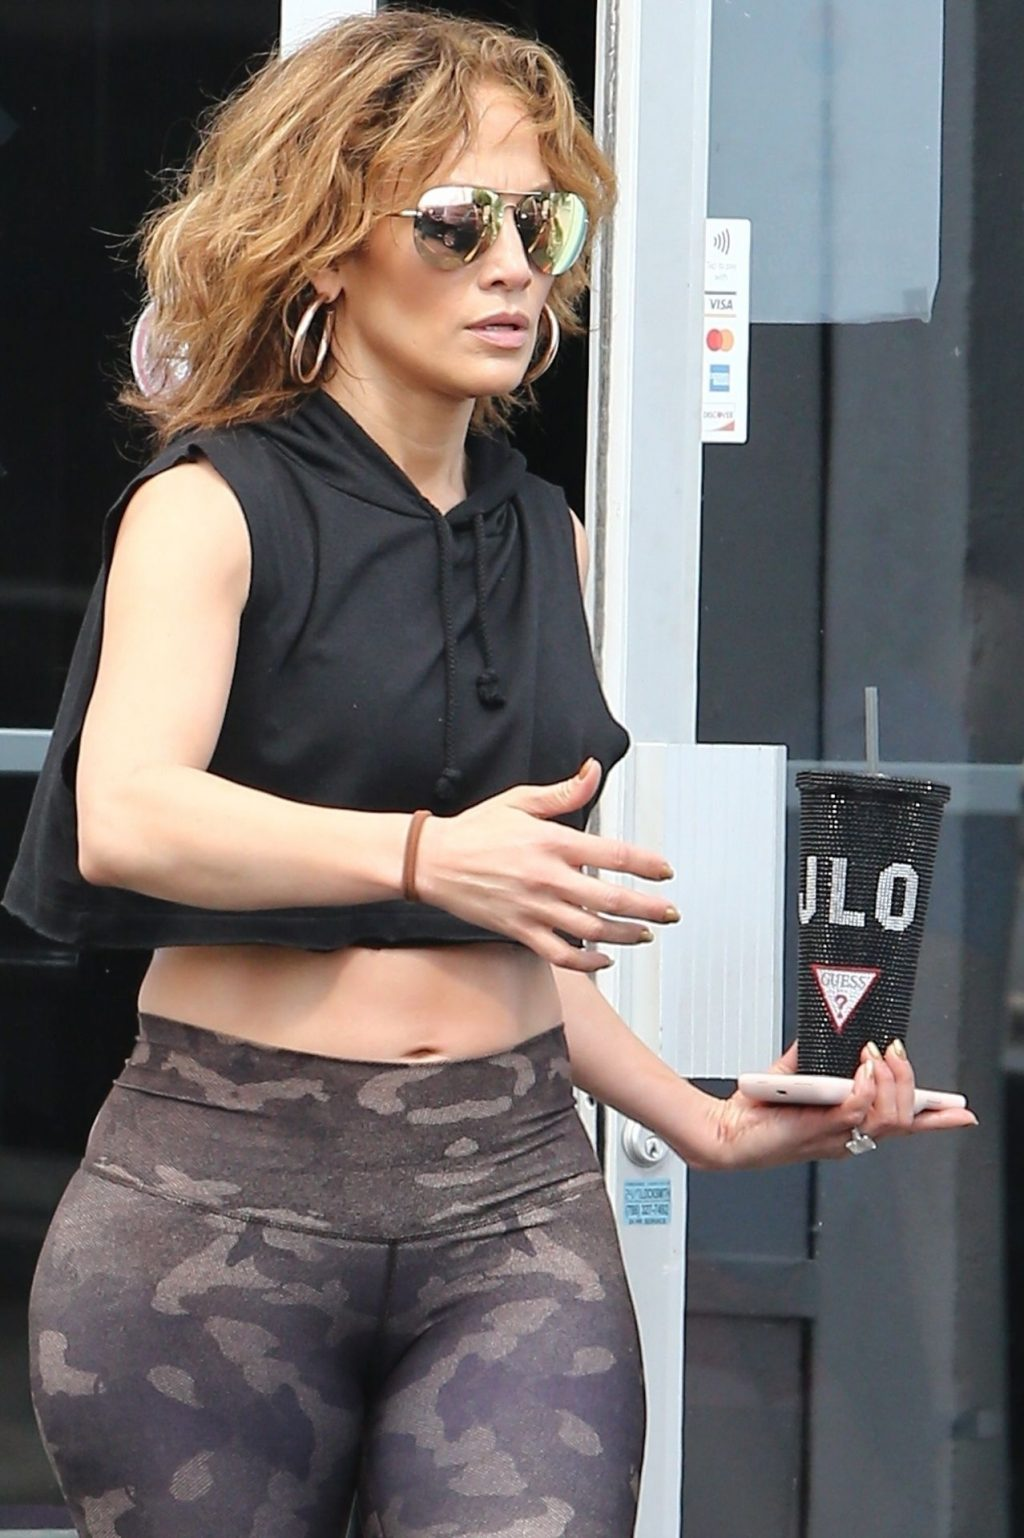 Jennifer Lopez Sexy The Fappening Blog 38 1024x1538 - Jennifer Lopez Shows That Rock Hard Abs Don't Just Happen as She Dutifully Hits the Gym in Miami (48 Photos)